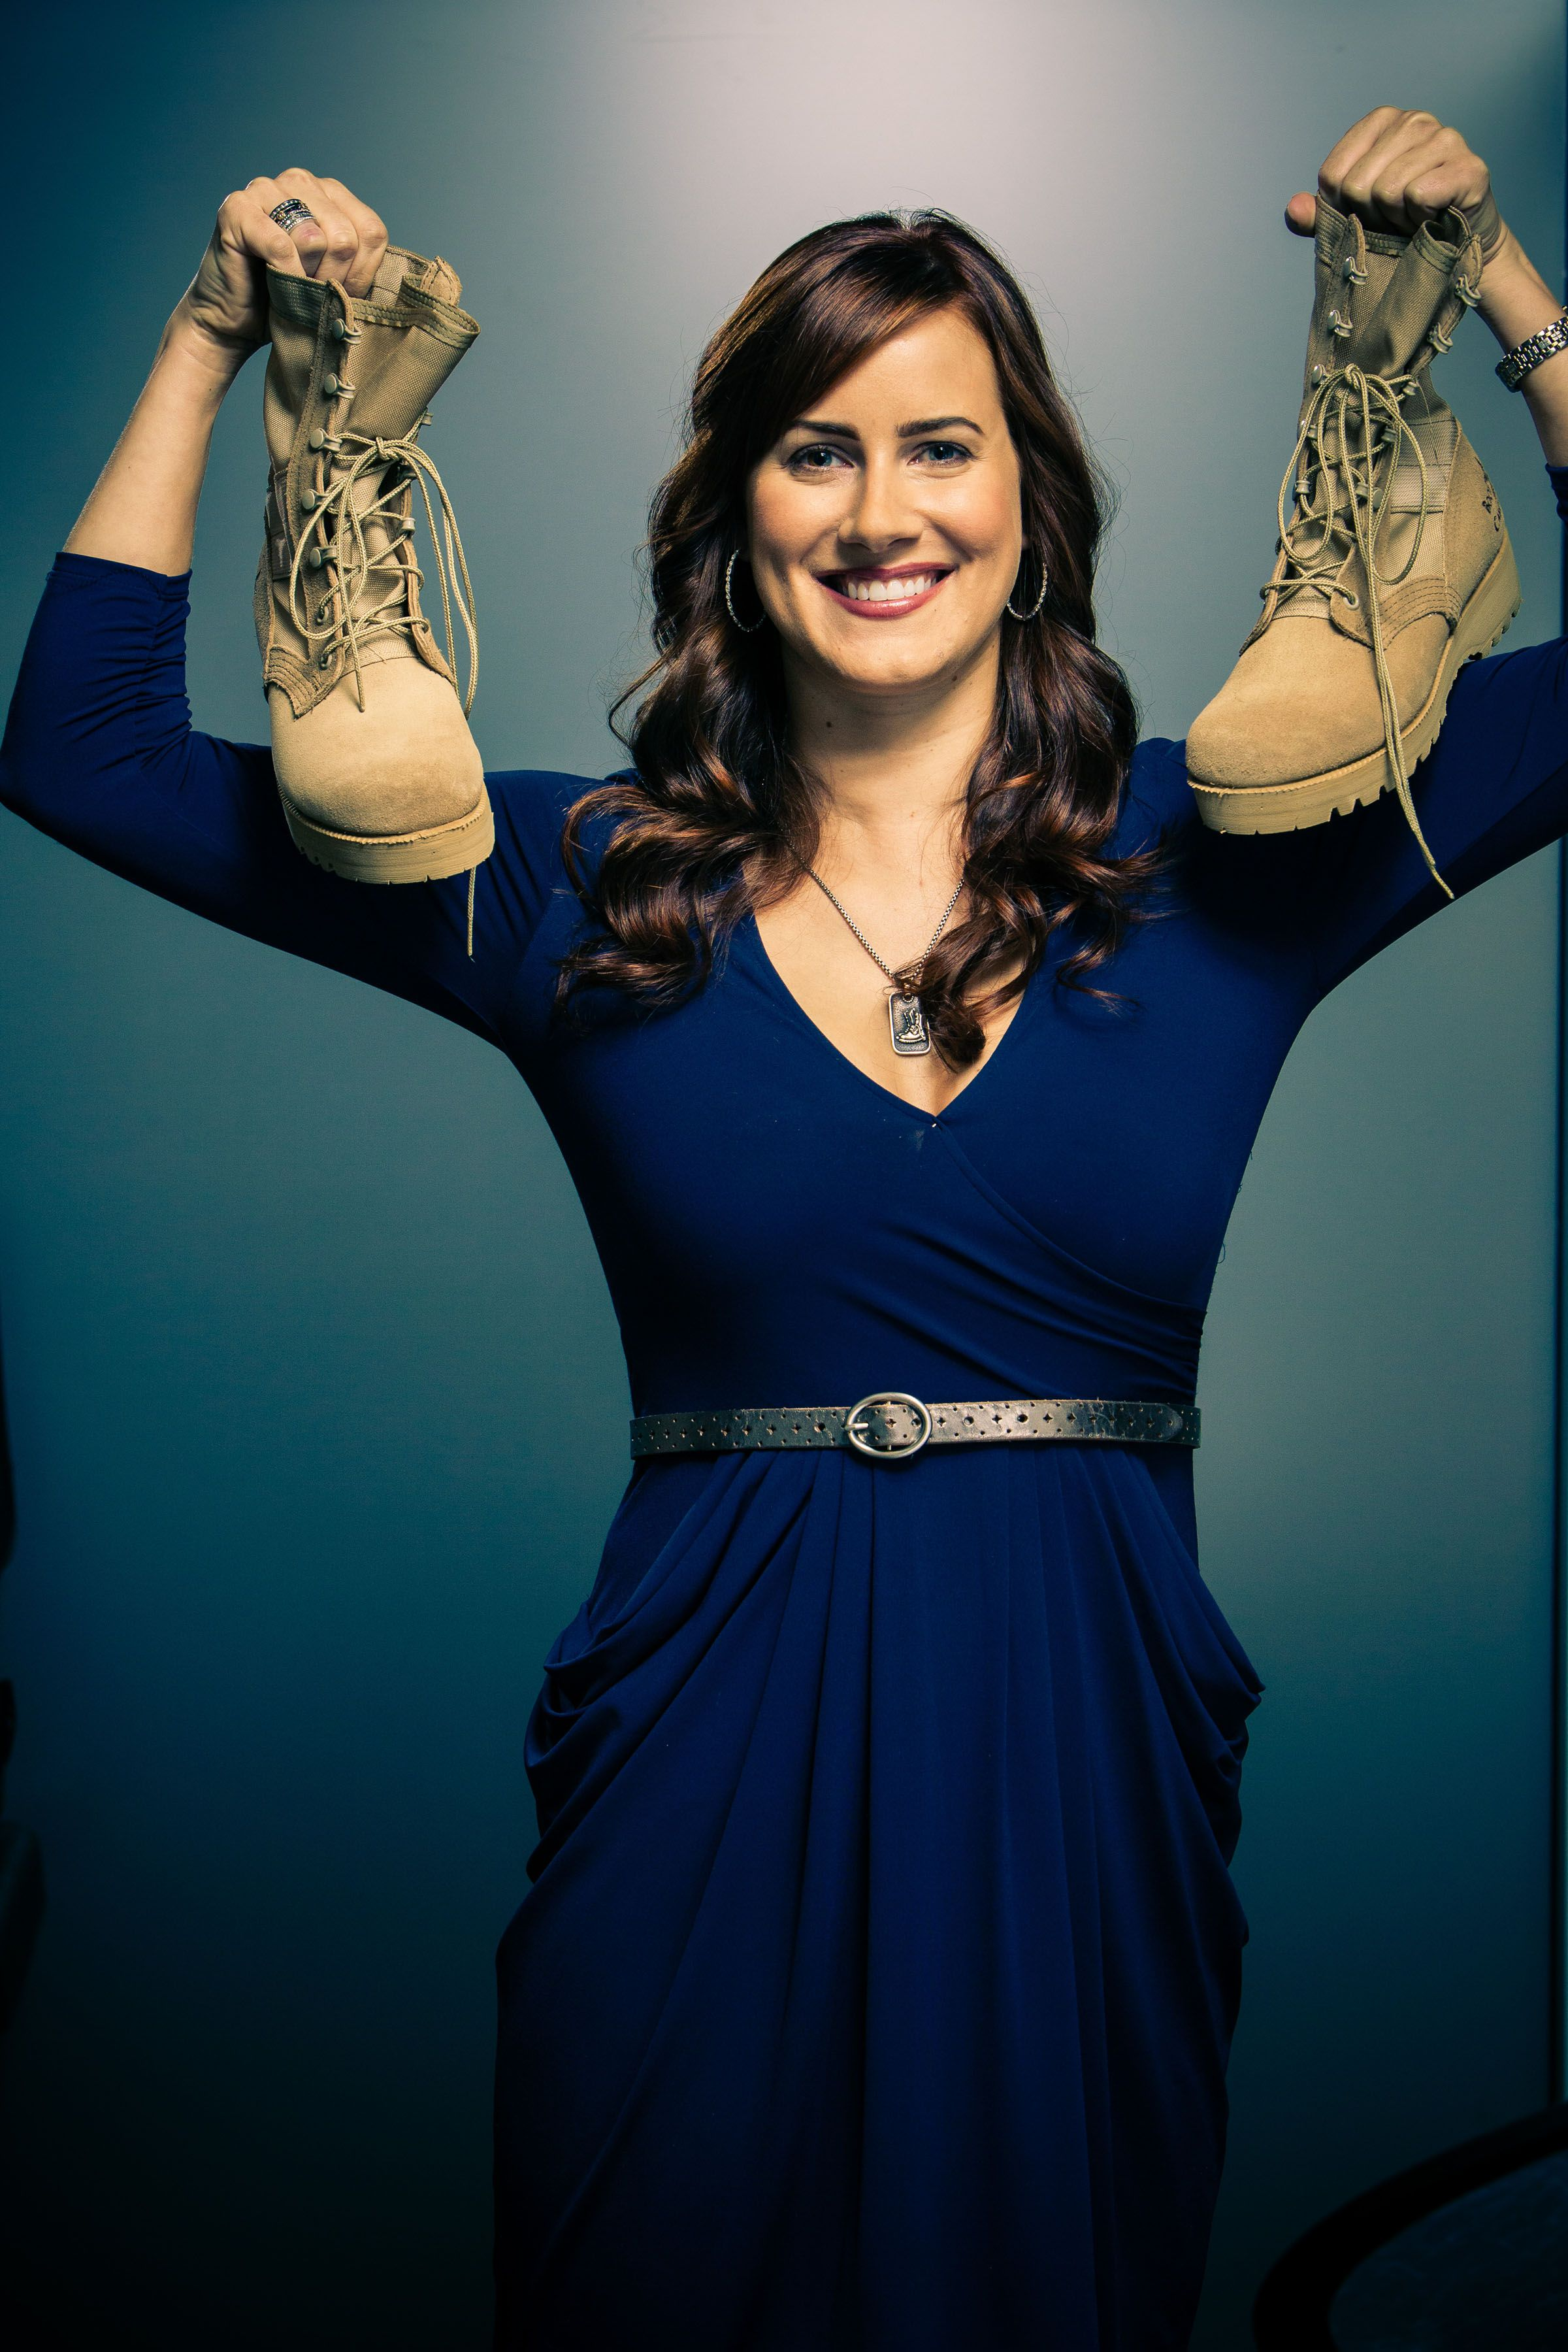 """Meghan McDermott from """"Boot Campaign"""" 